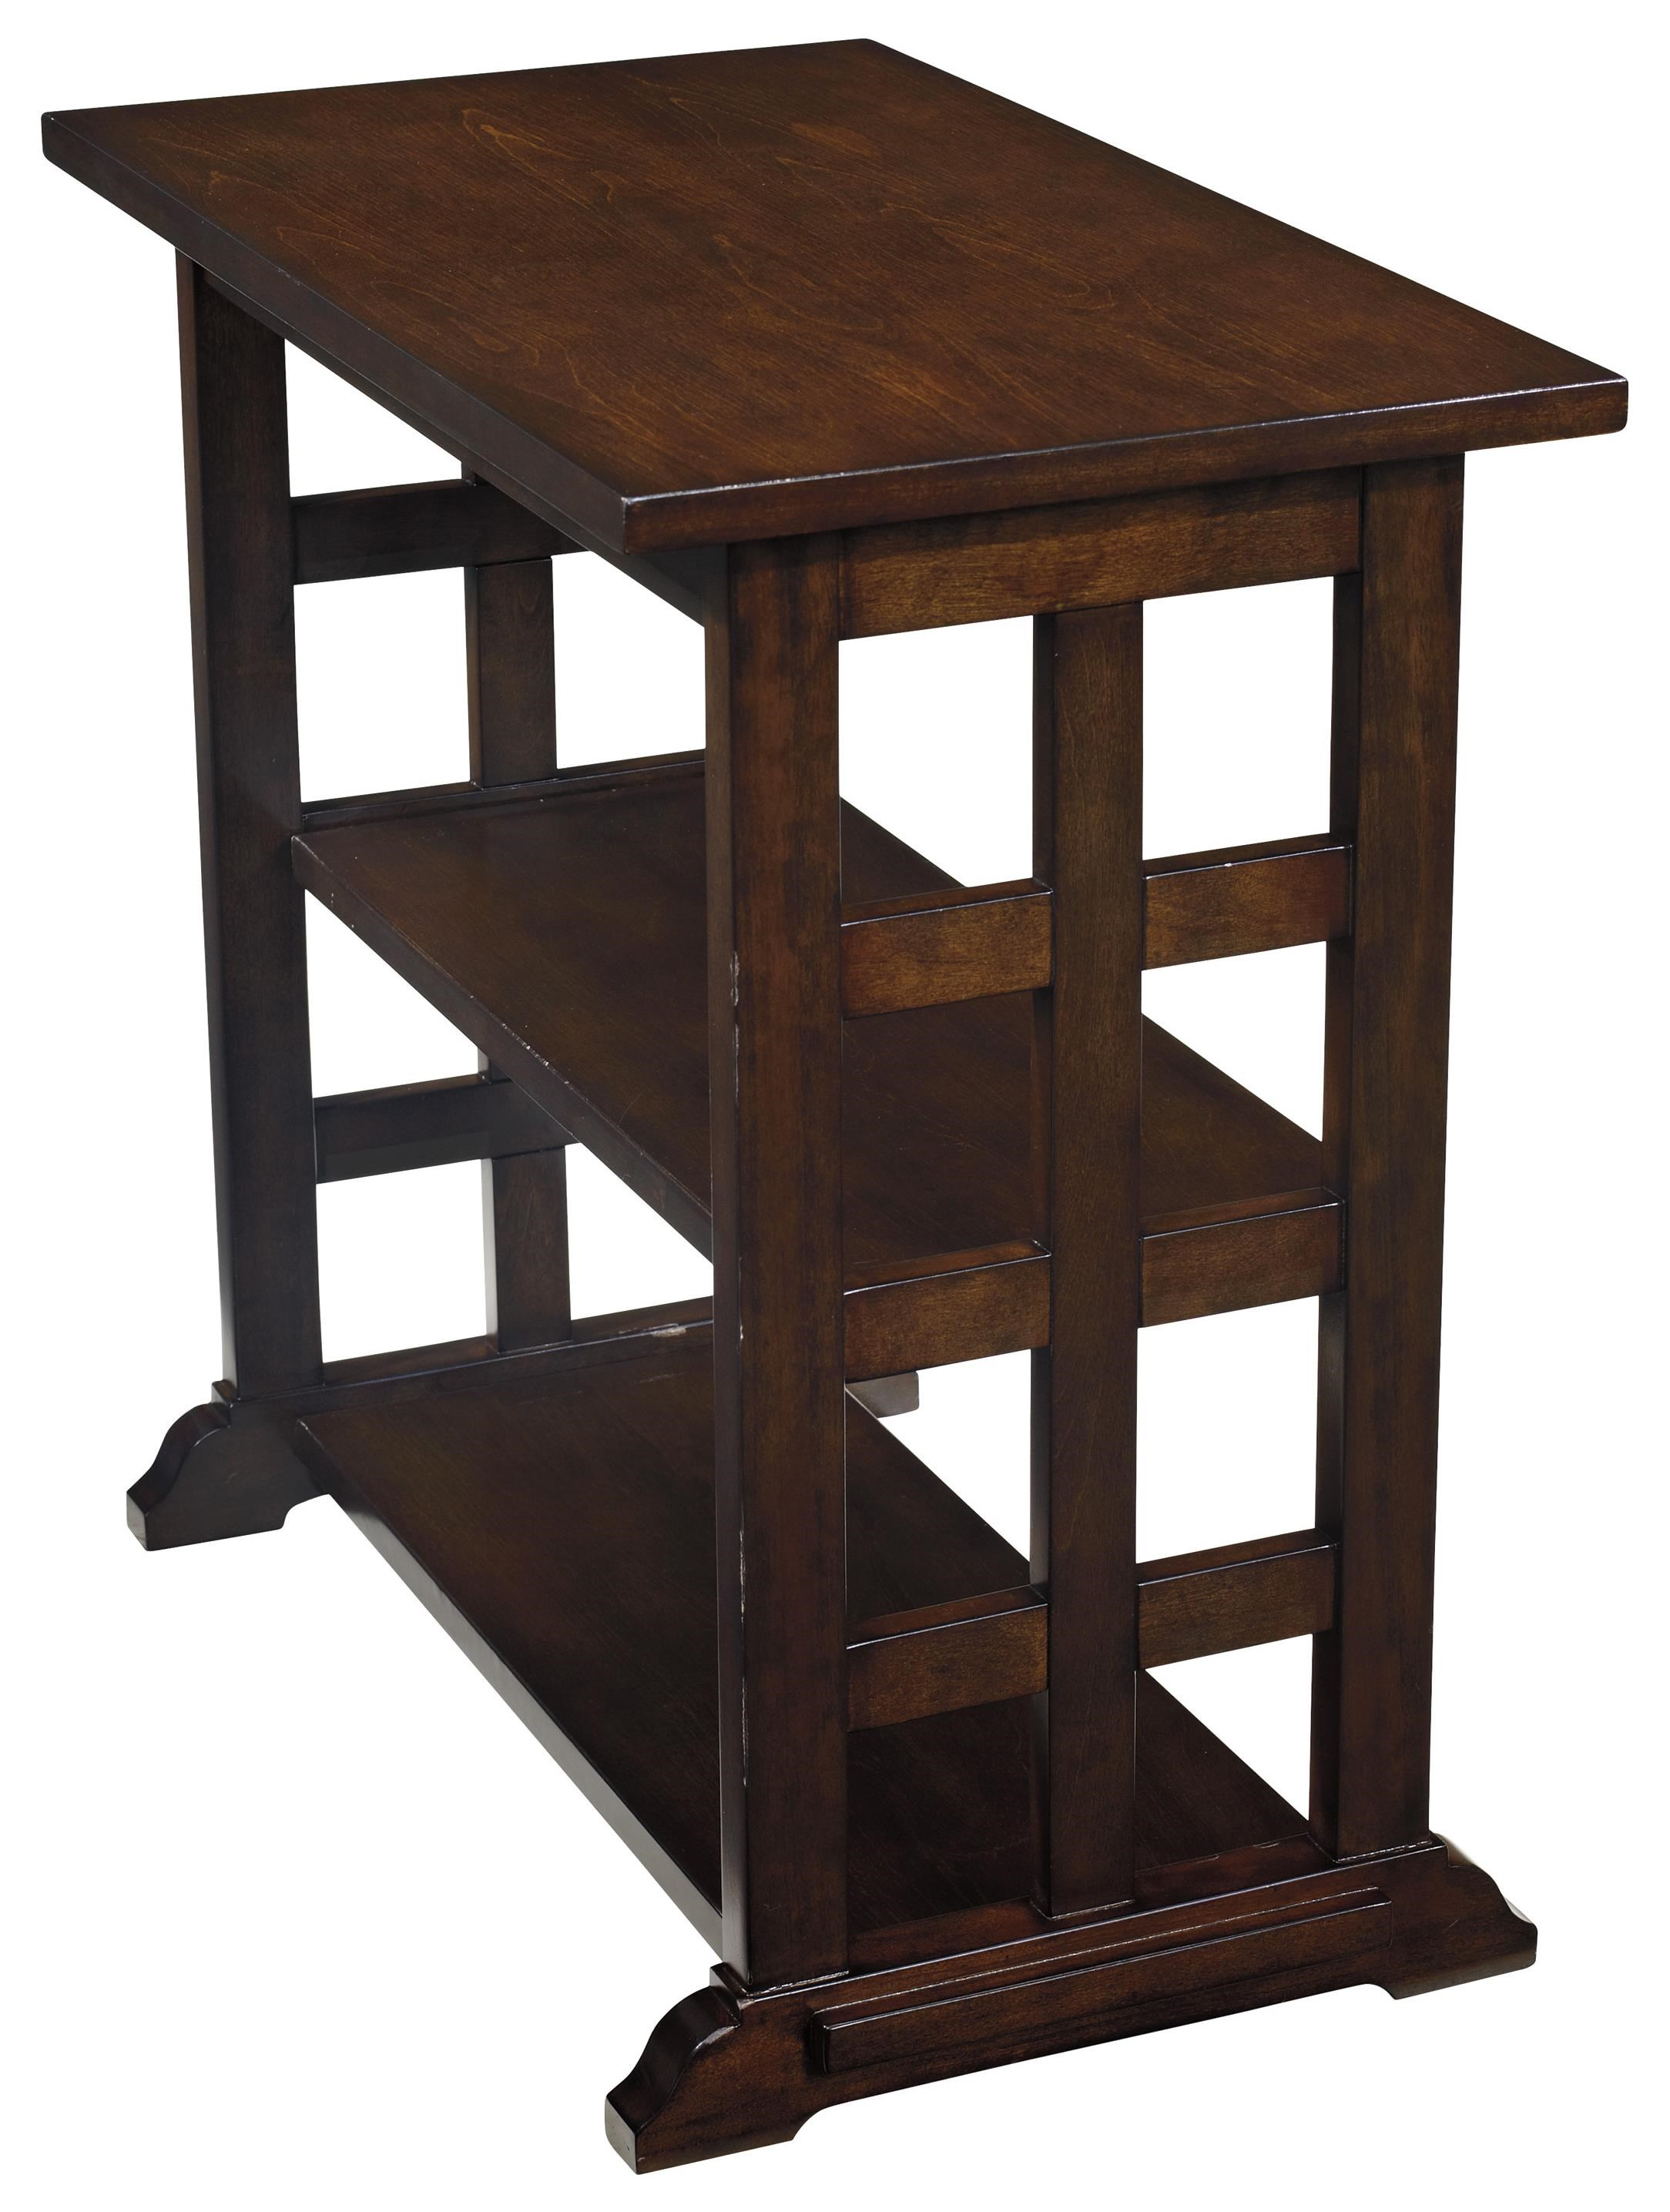 Charmant Signature Design By Ashley Braunsen Chair Side End Table With Lattice  Design U0026 2 Shelves